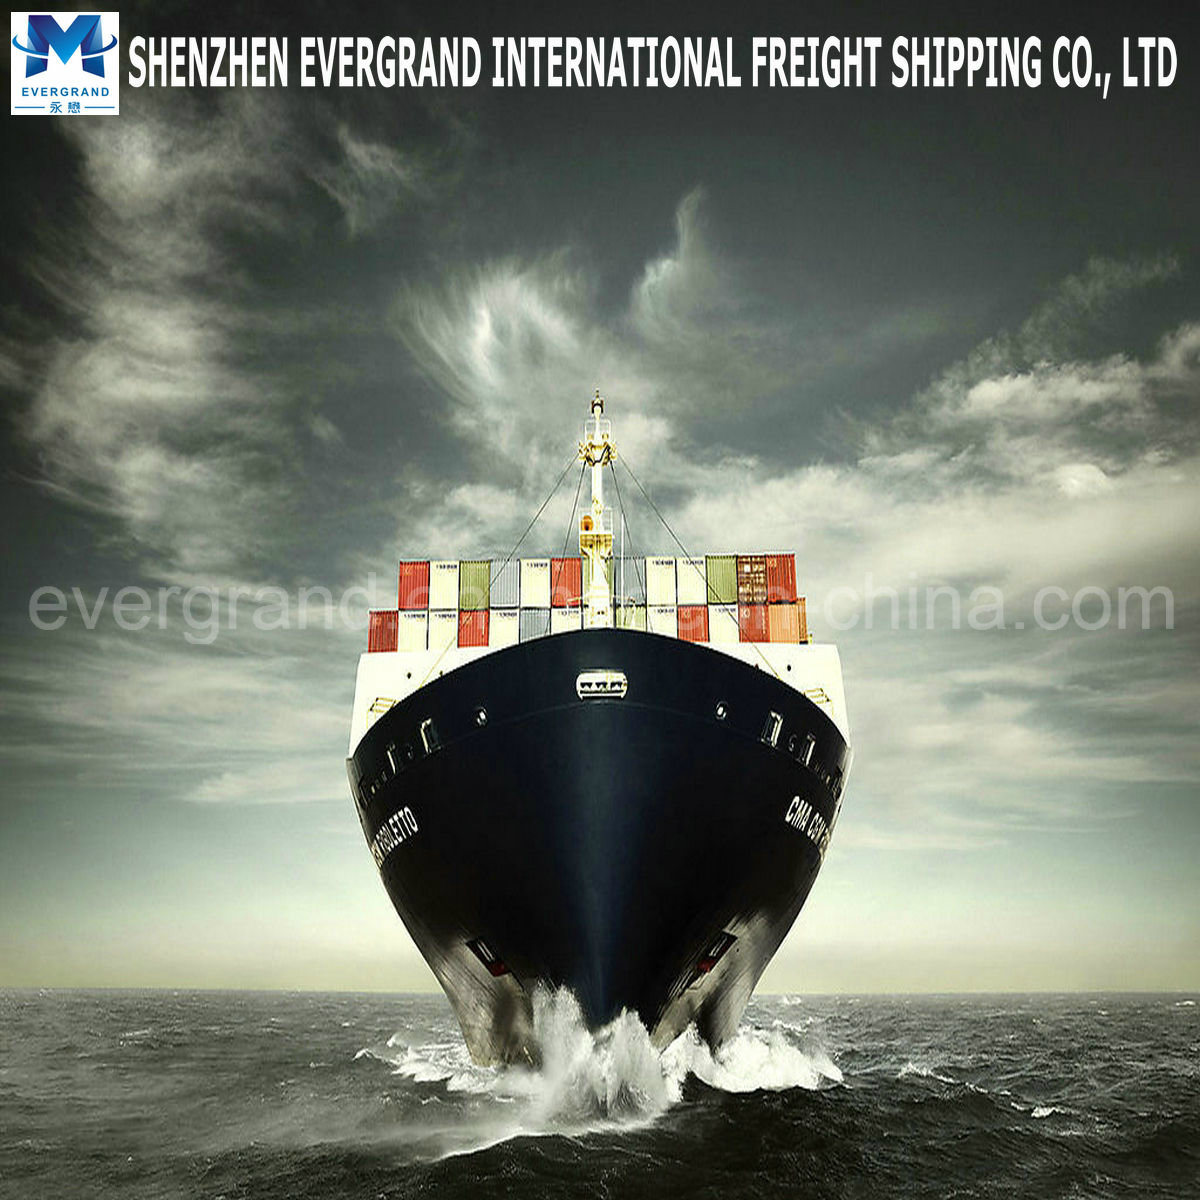 Sea Freight Shipping From China to Laguaira Venezuela